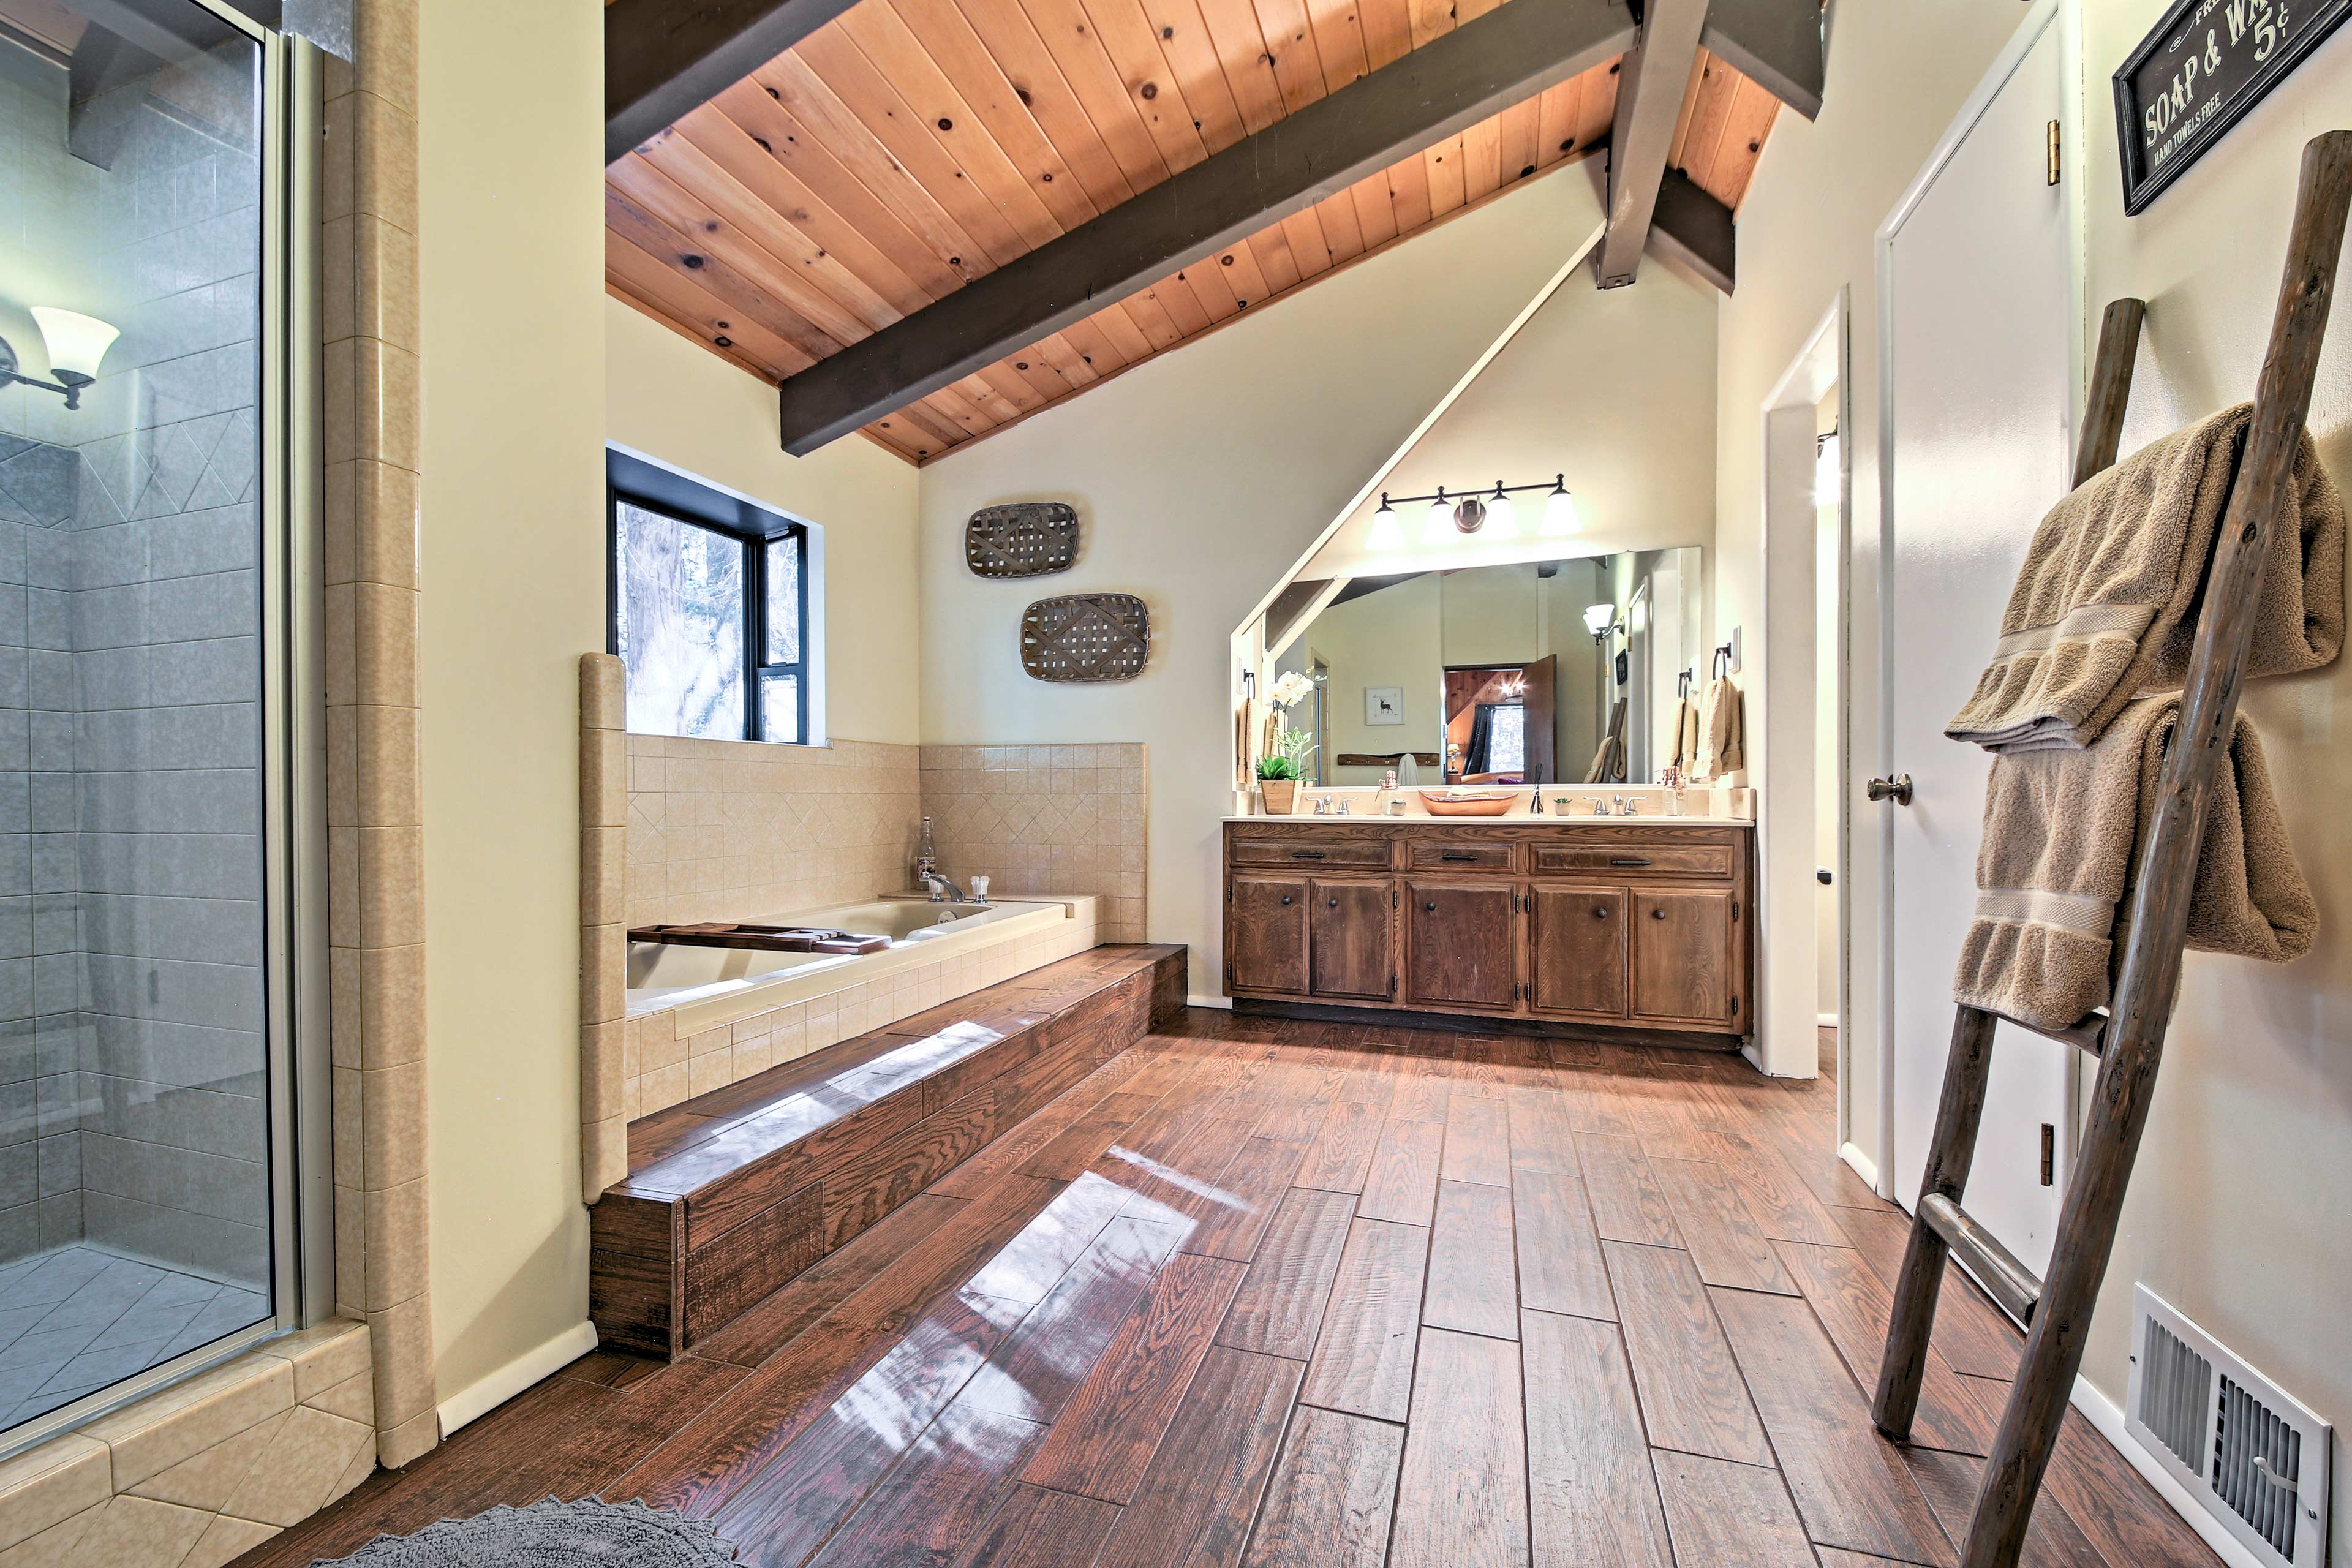 The luxurious master bath hosts a glass-enclosed shower and large sunken tub.